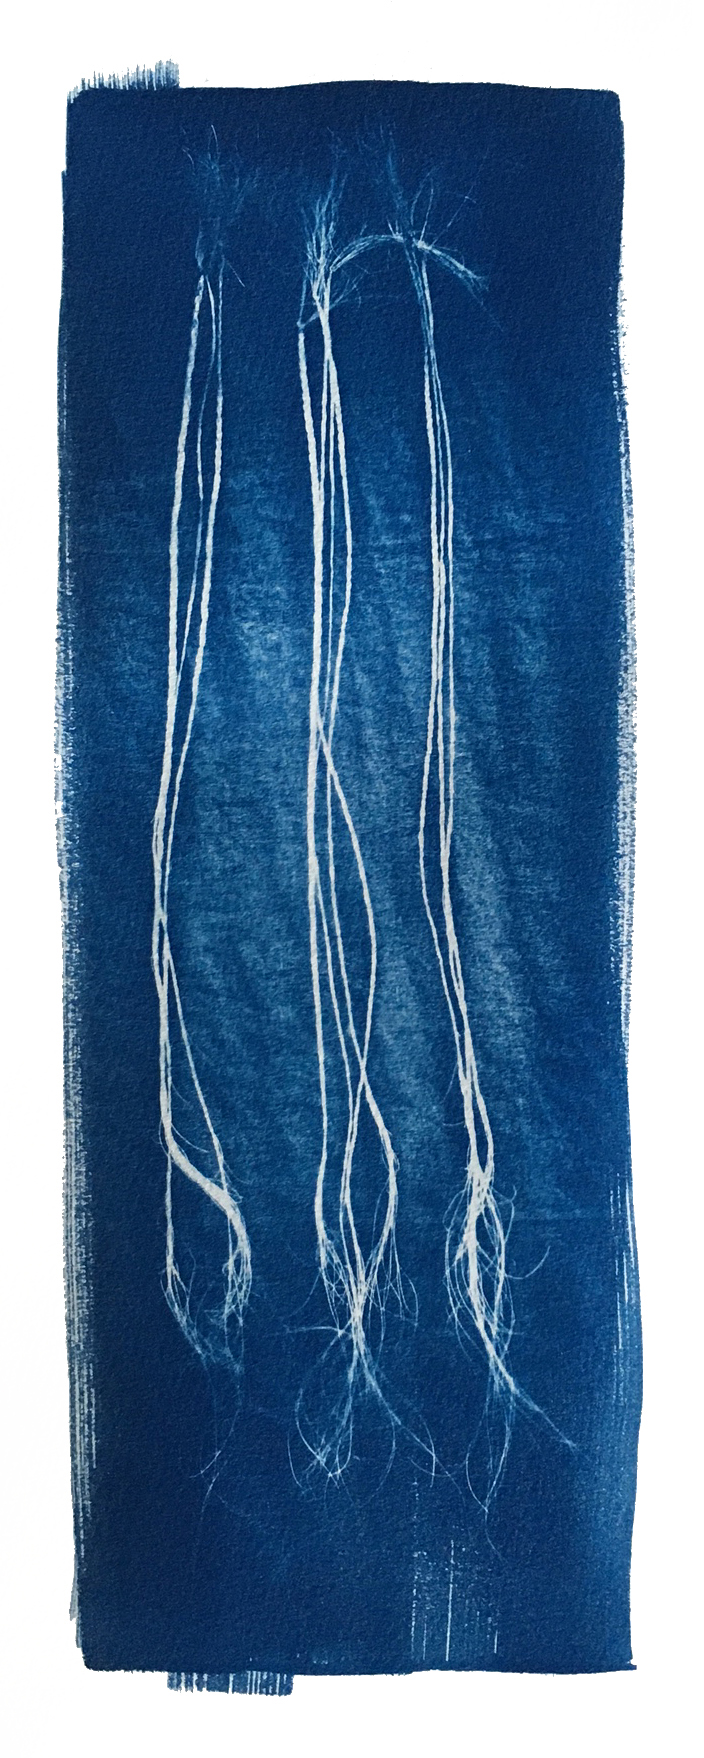 "TITLE /  Plaited Sabal Minor, No. 2  MEDIUM /  Cyanotype Print, Printed on 100% Cotton Paper  SIZE /  7"" x 16""  PRICE /  $350.00"